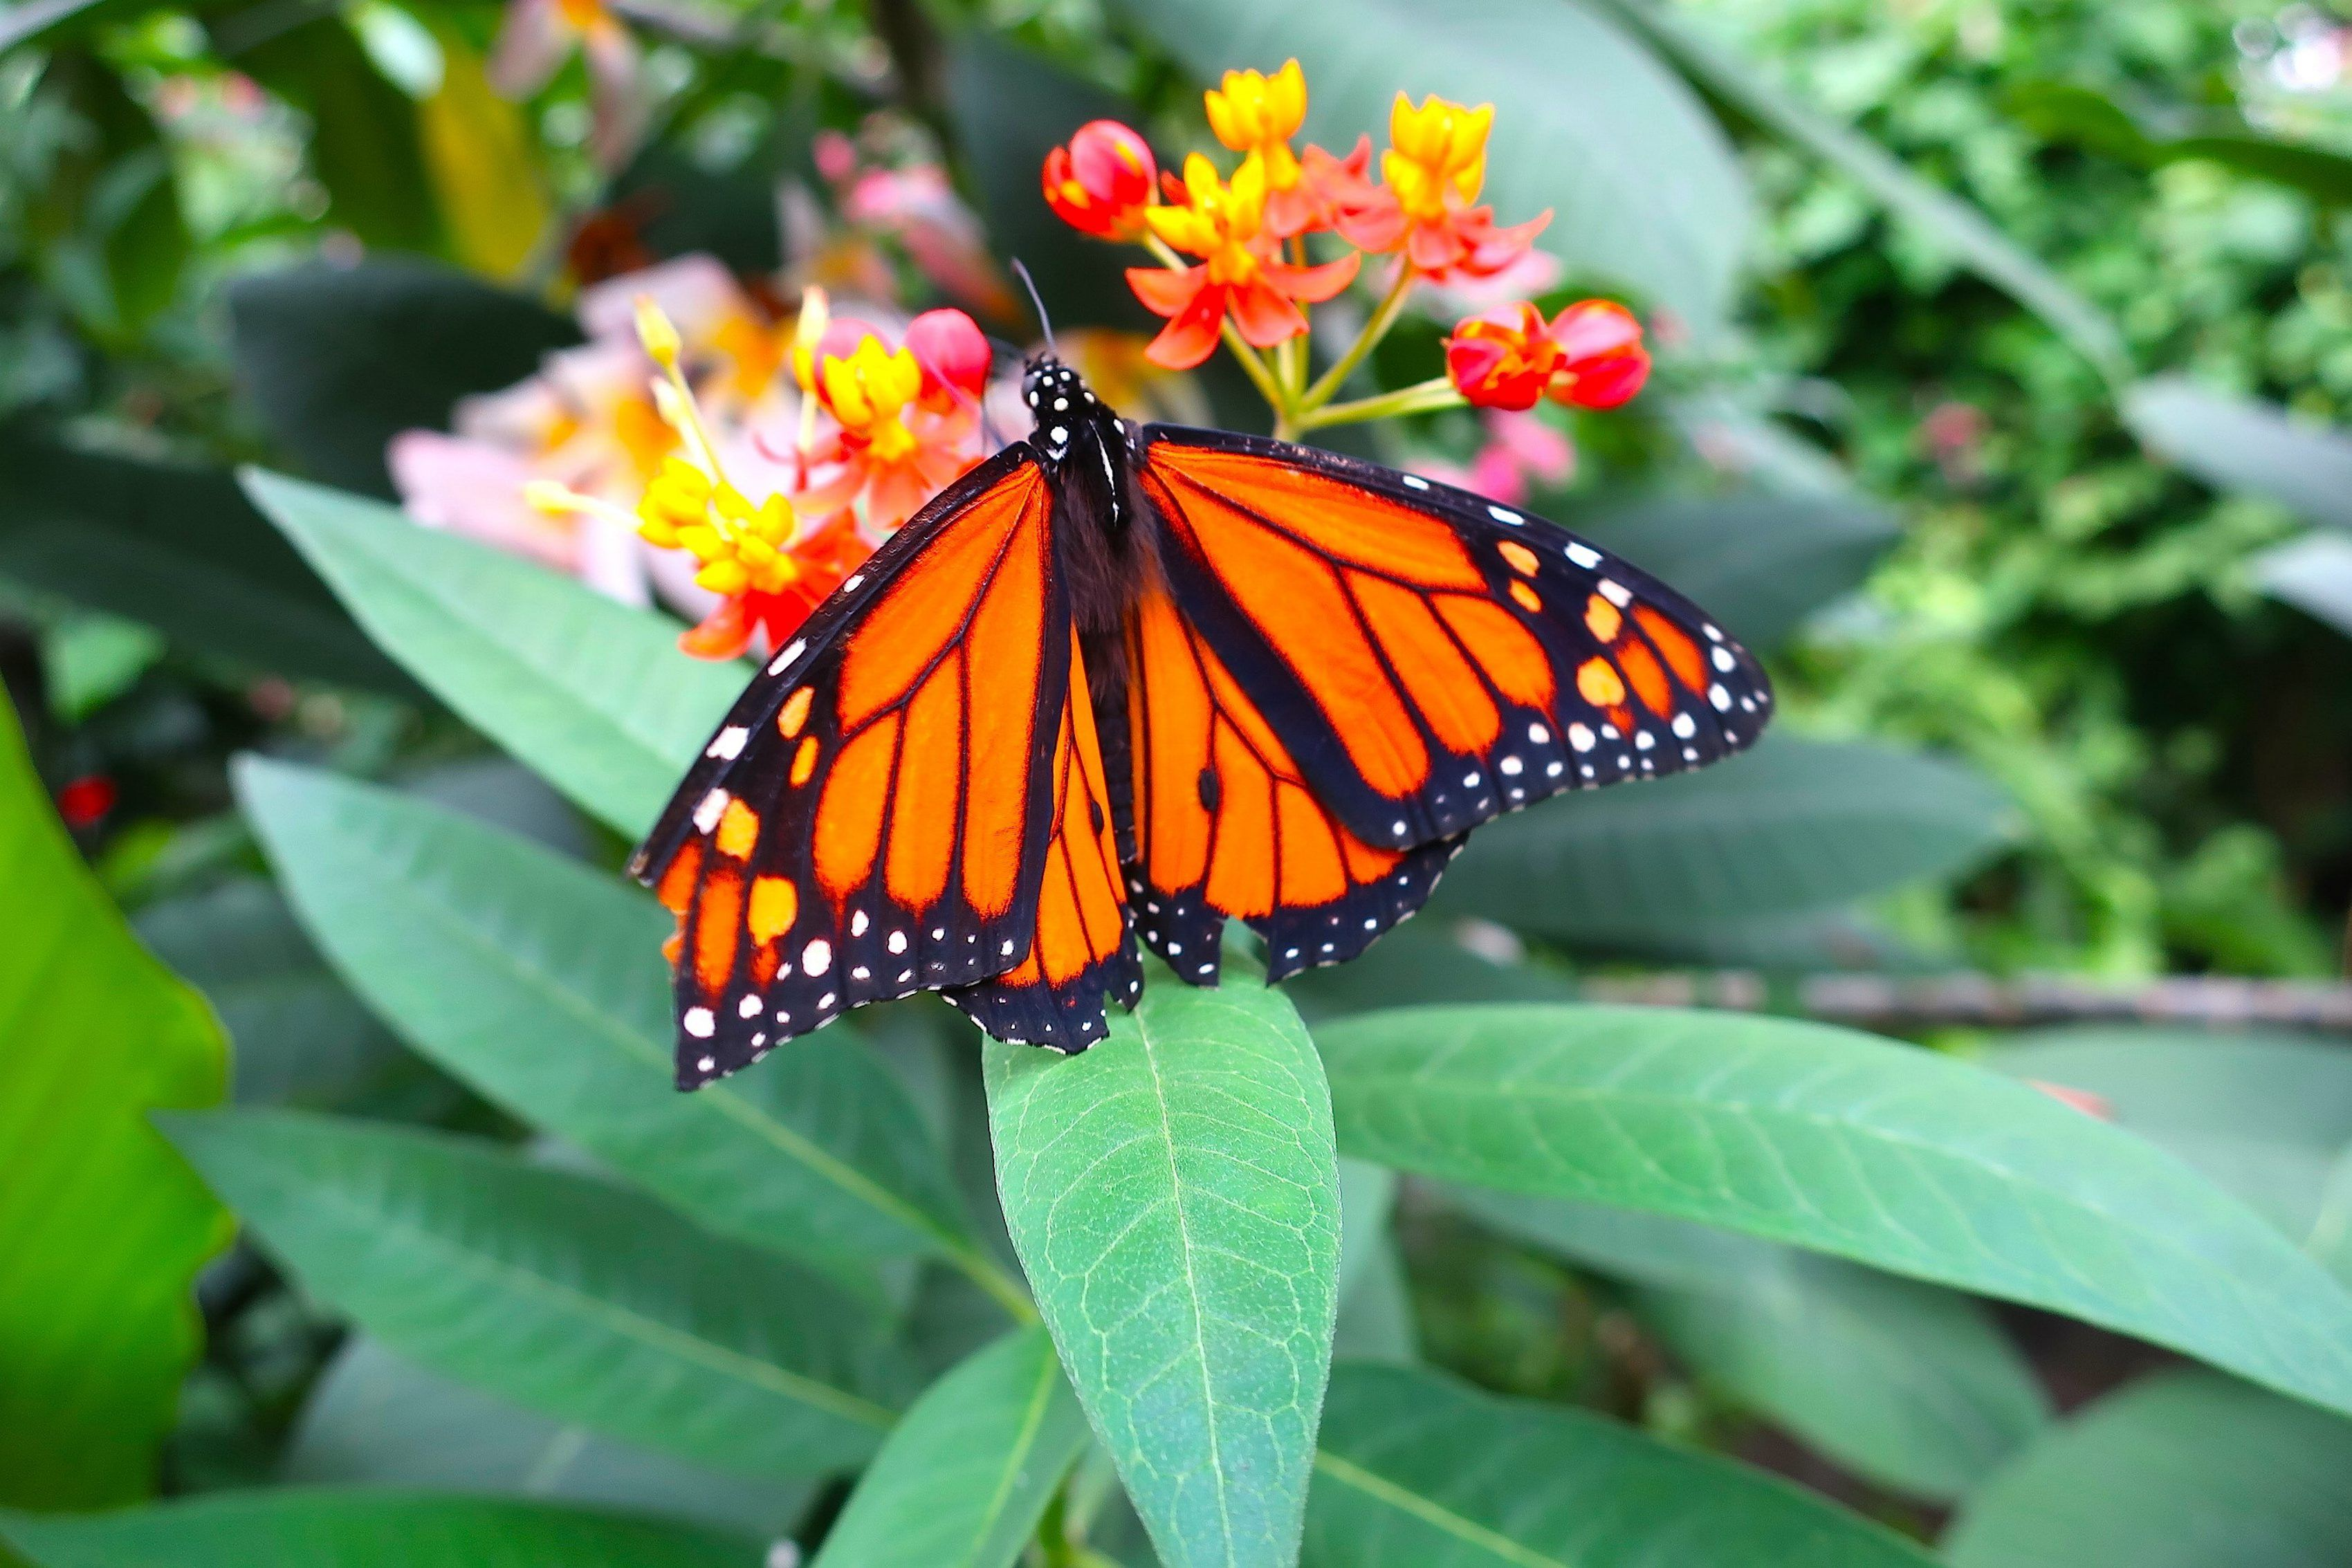 Education On Monarch Butterflies Takes Flight